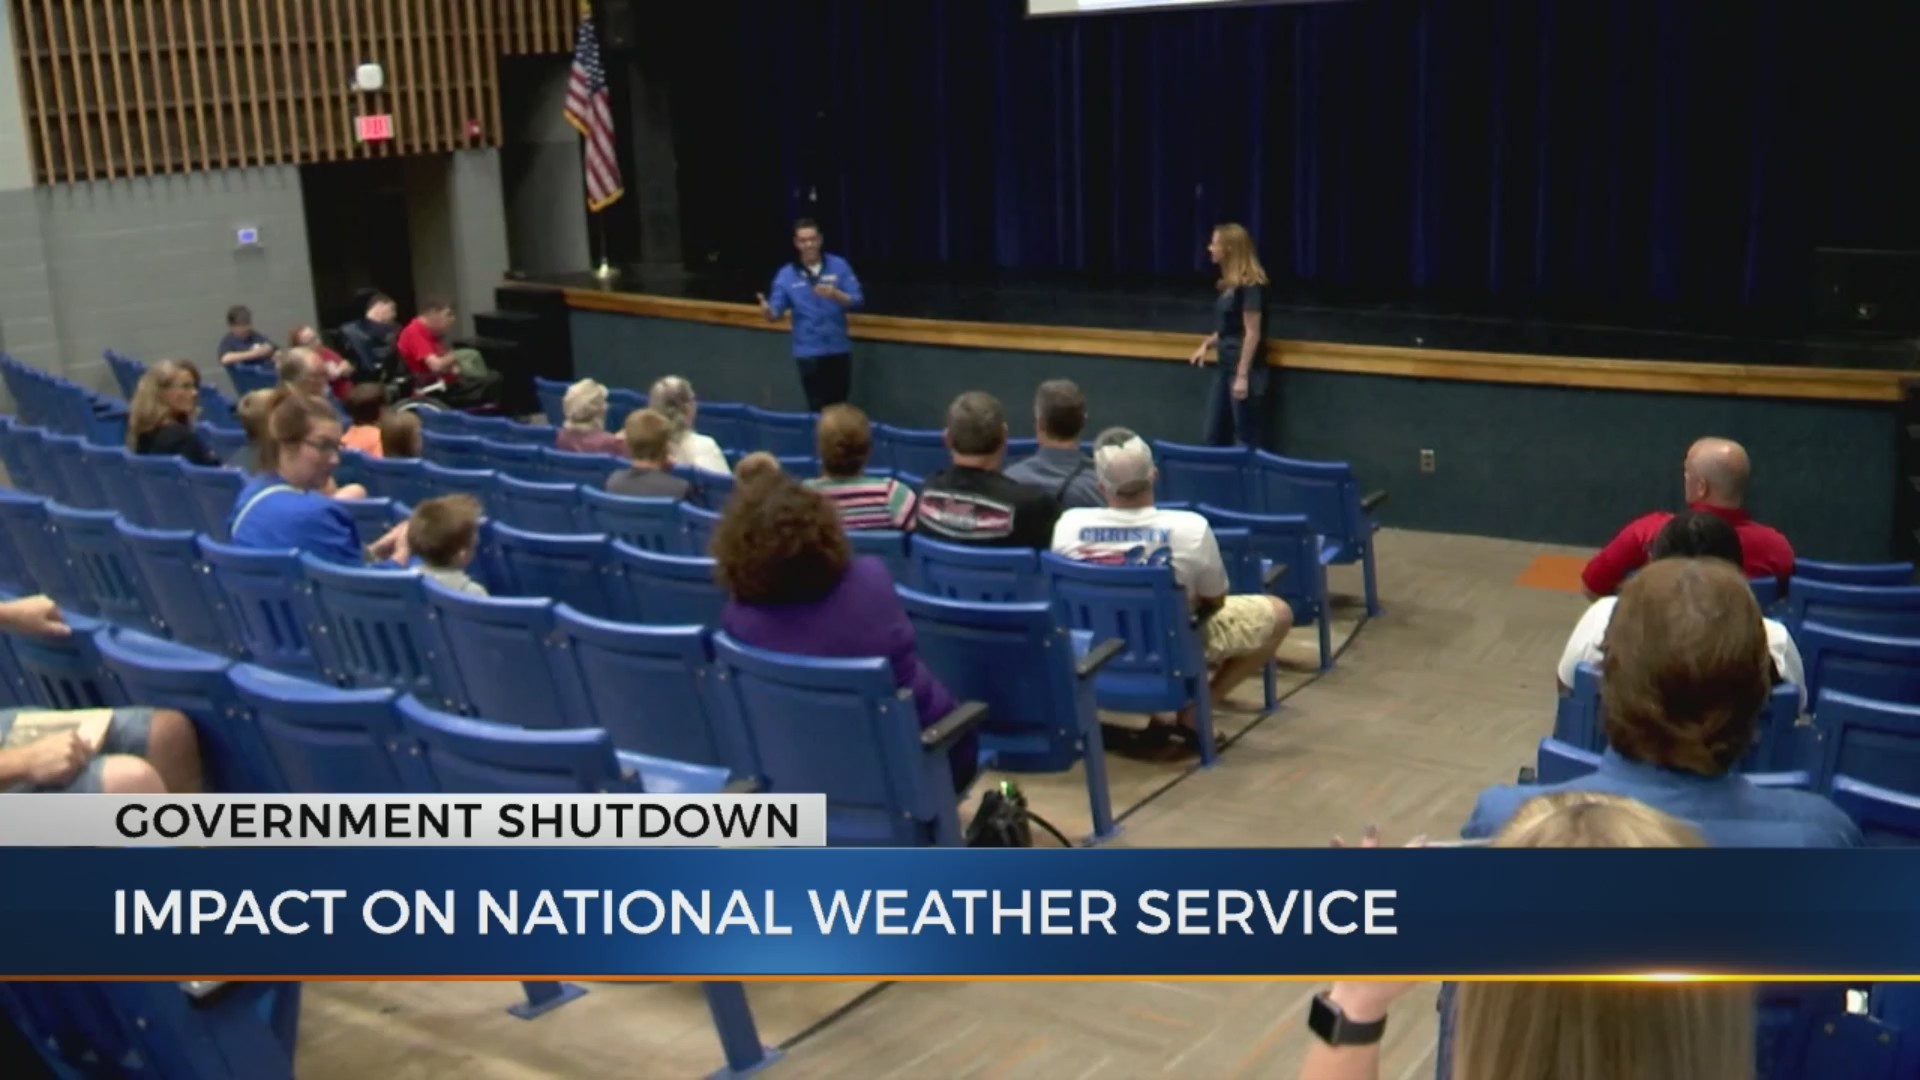 Local National Weather Service impacted by shutdown